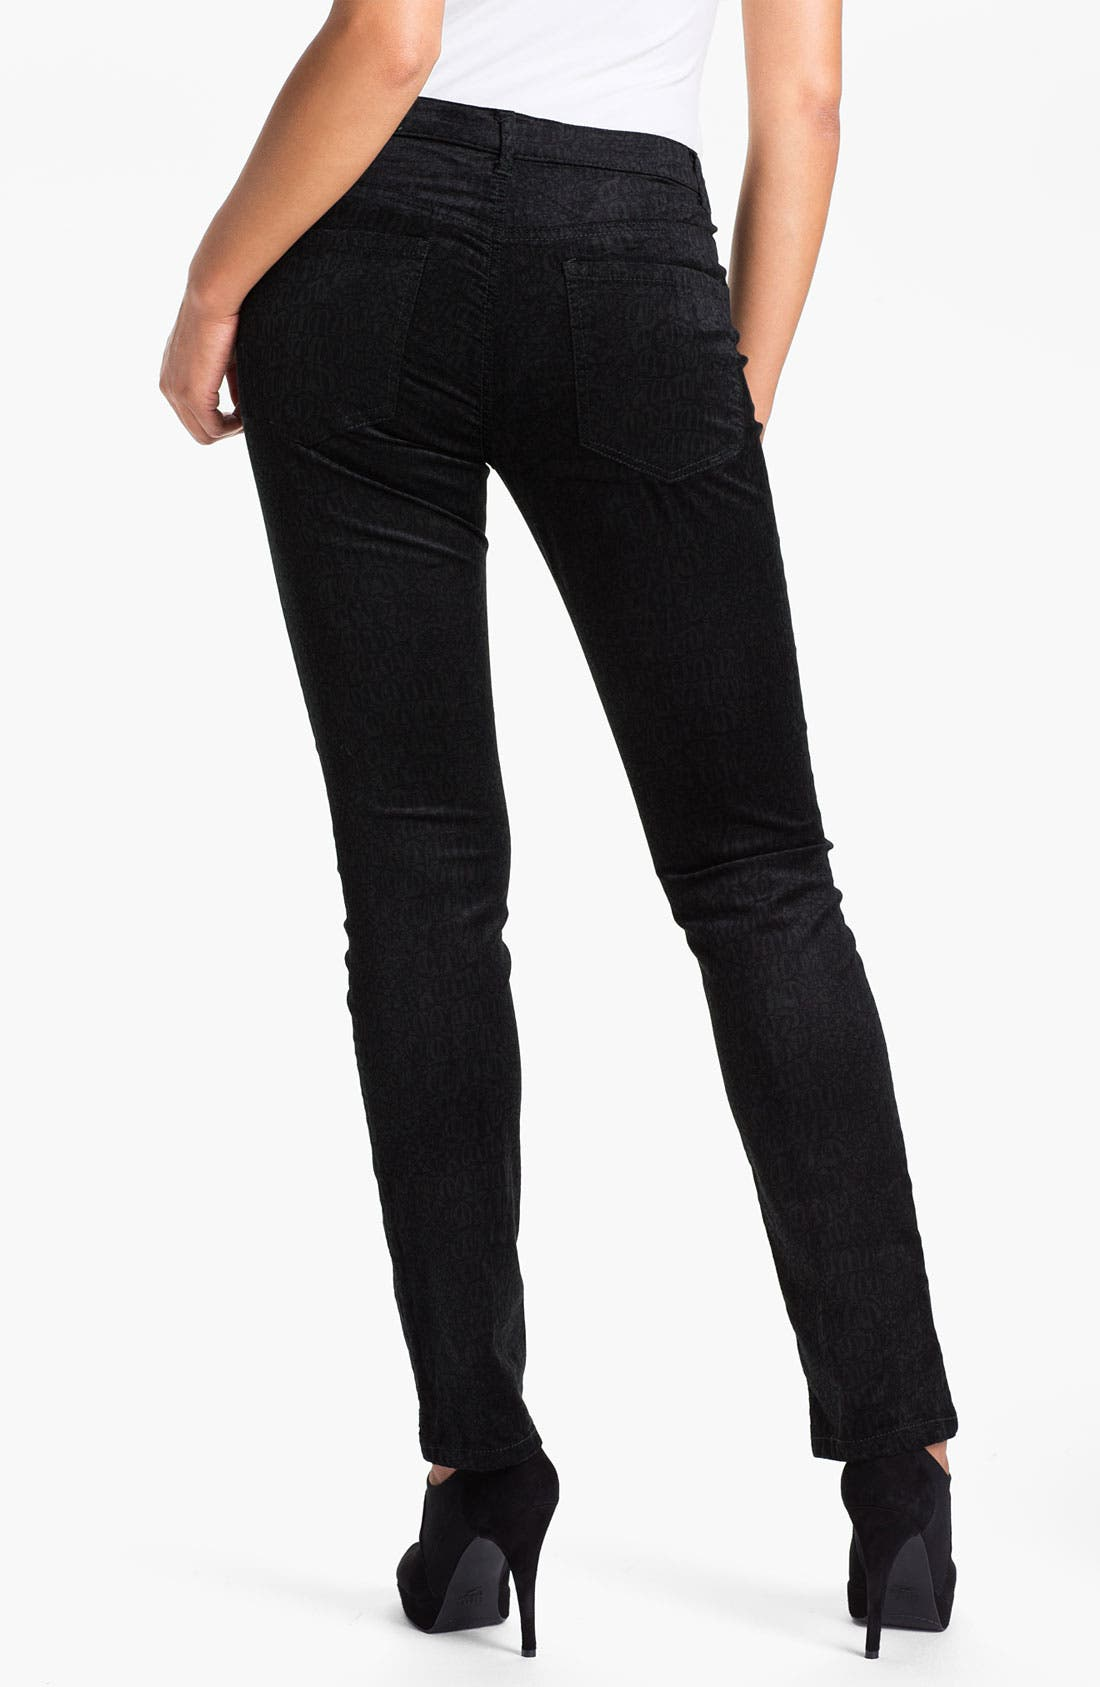 Jeans Company 'Sadie' - Cheetah' Straight Leg Velveteen Jeans,                             Alternate thumbnail 2, color,                             001